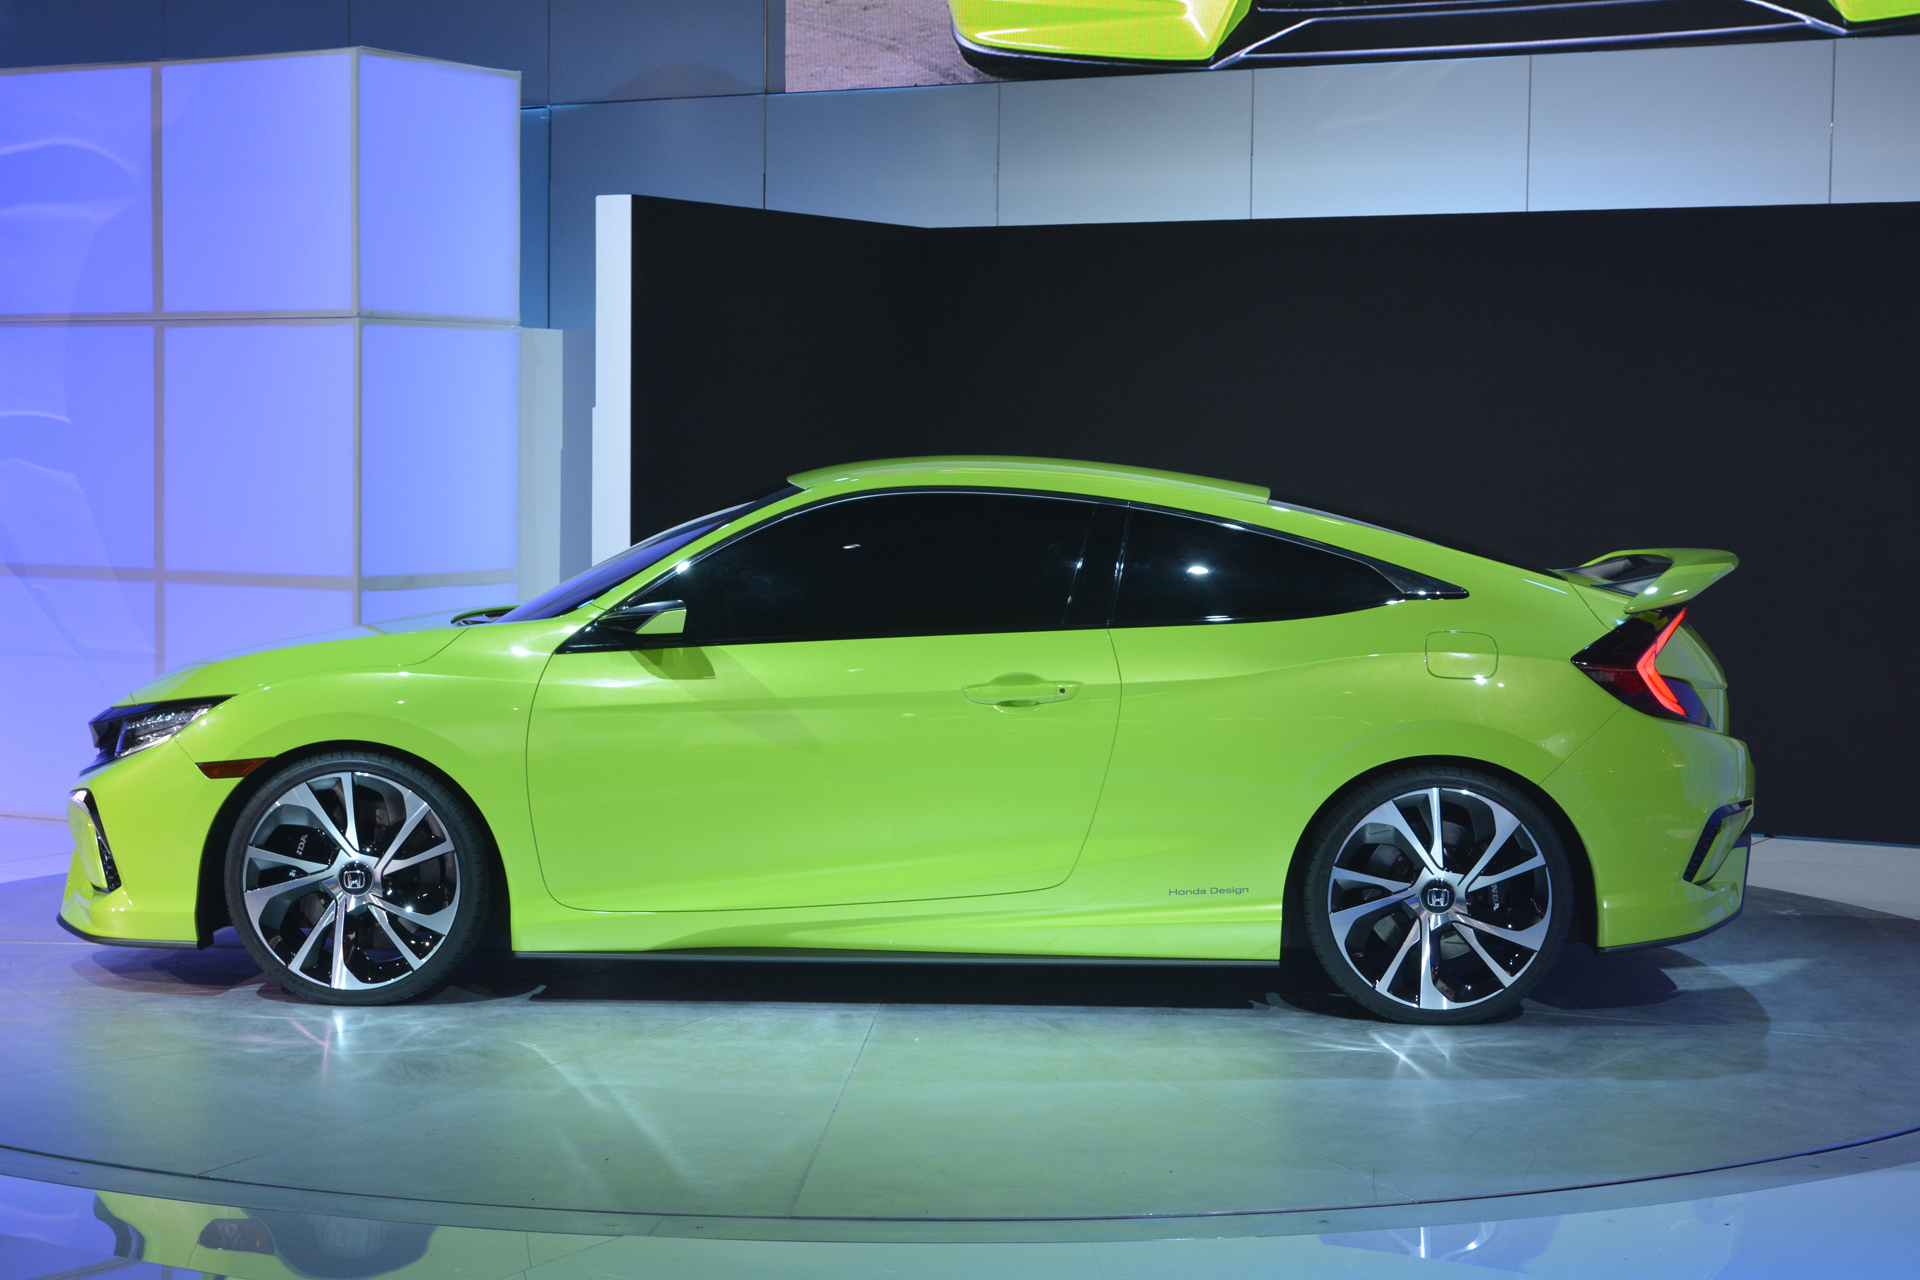 honda-civic-concept-05-1